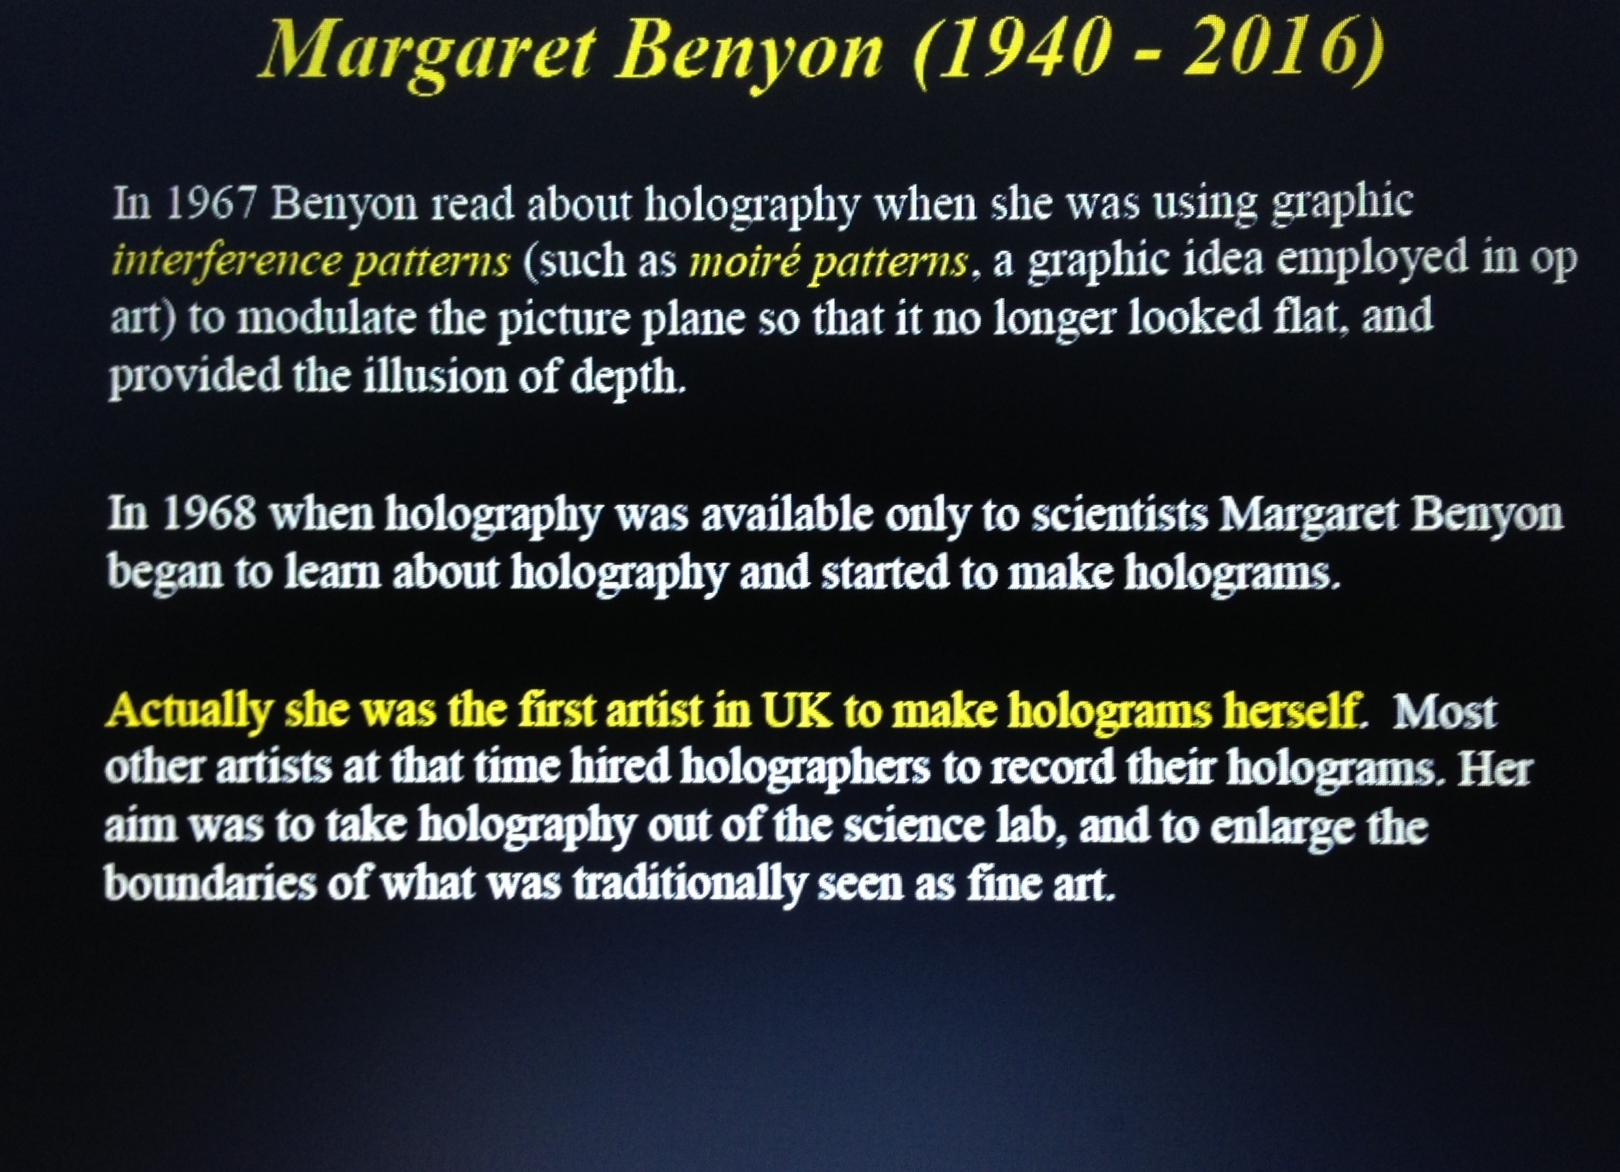 Margaret Benyon 2